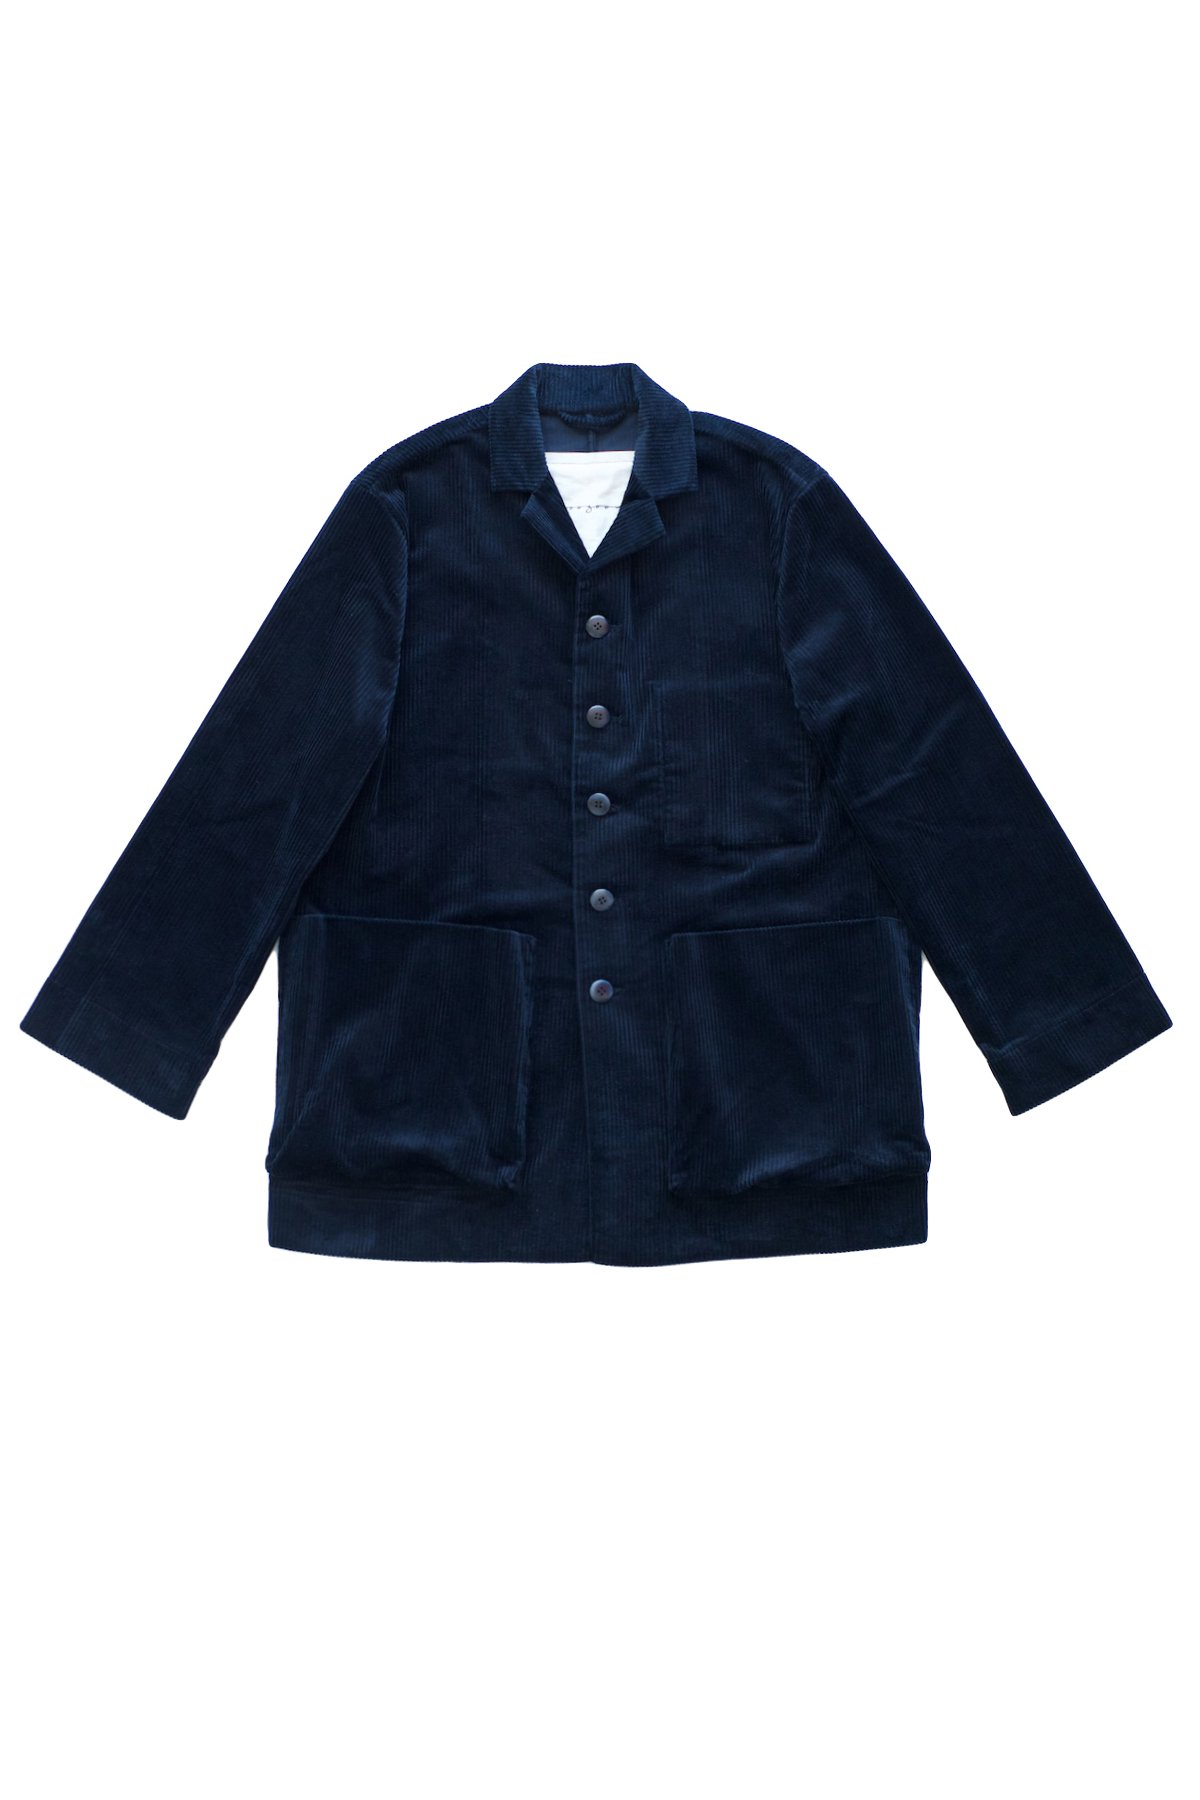 toogood - THE PHOTOGRAPHER COAT - JUMBO CORD - INK PRICE  145,200 tax-in